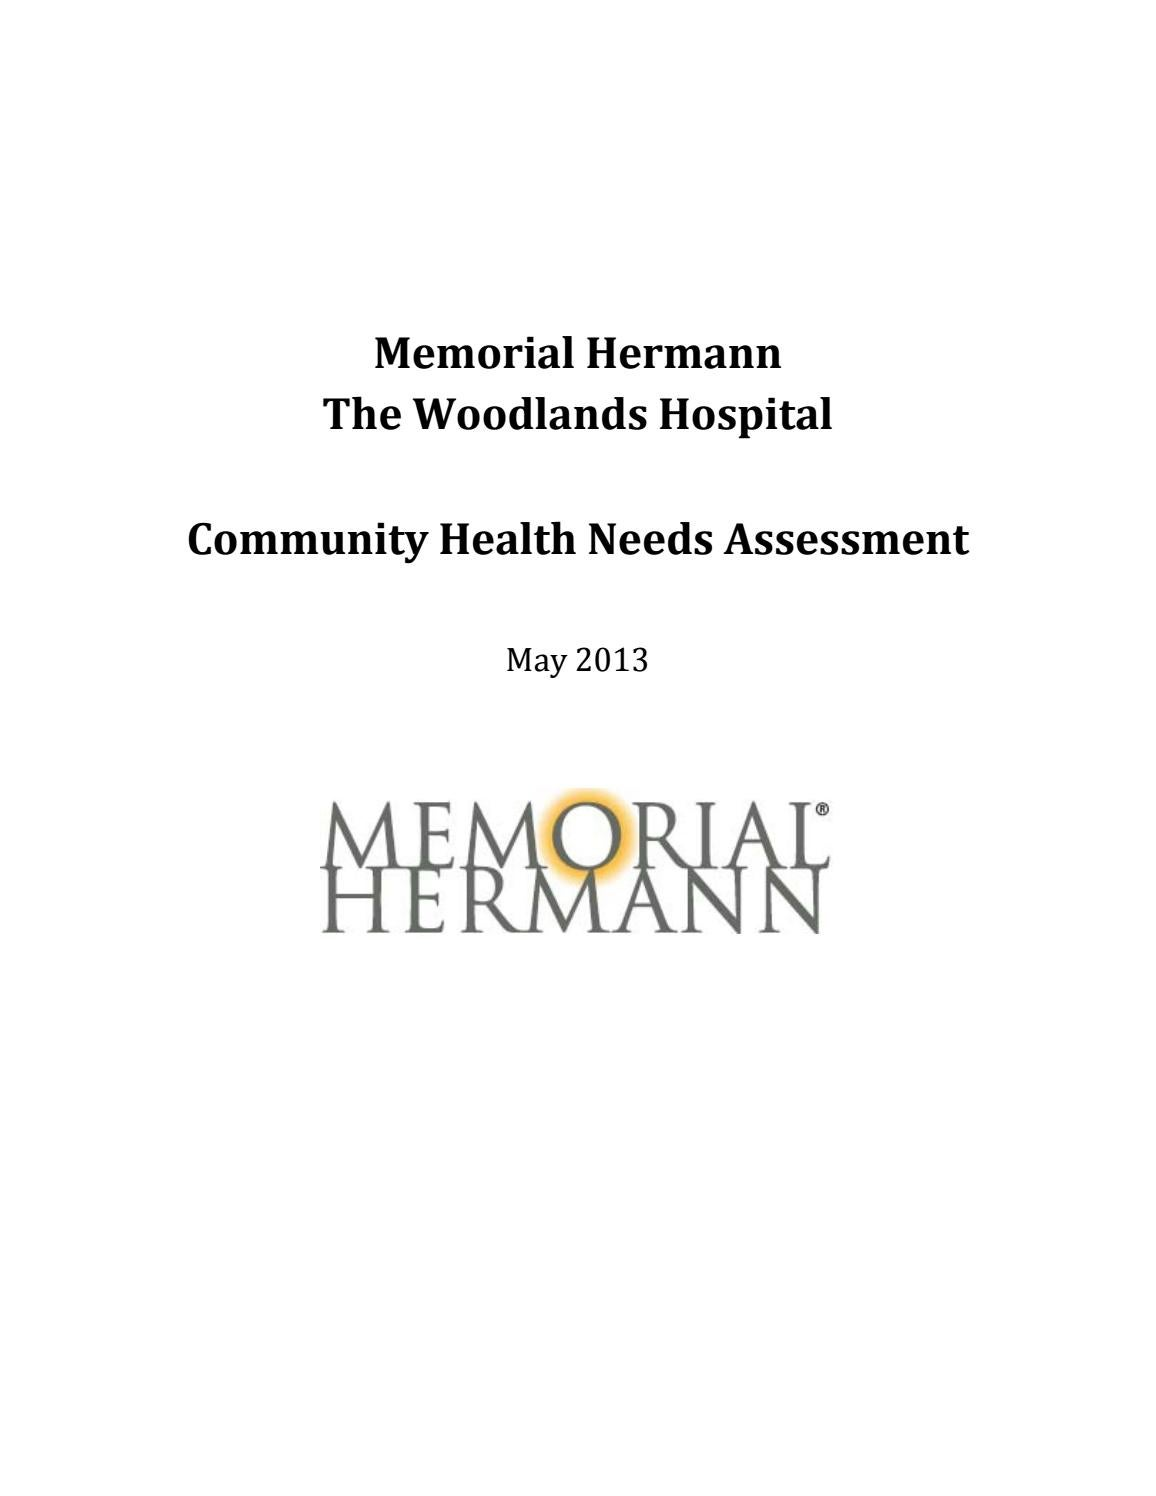 Chna 2013 memorial hermann the woodlands hospital by Texas